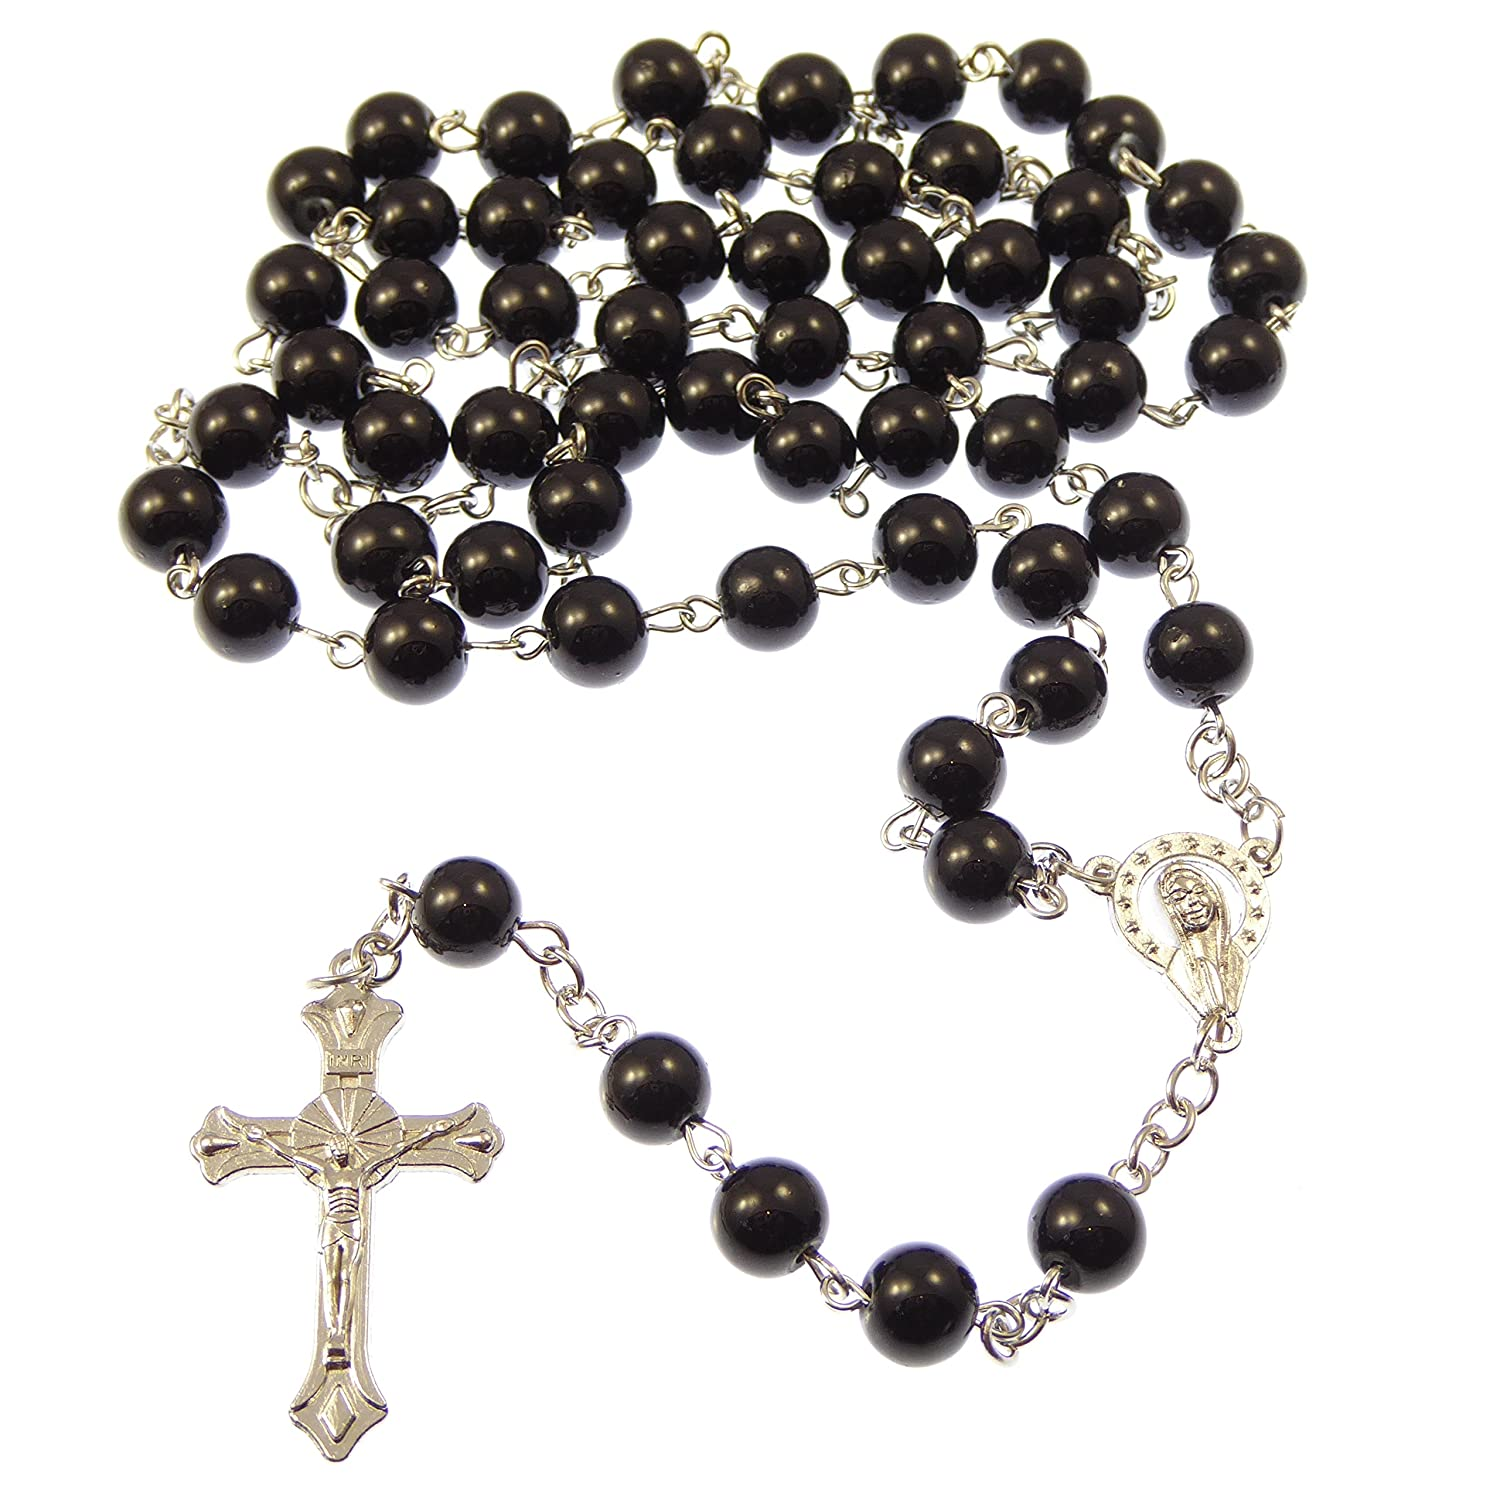 Long black metal long Catholic rosary beads with Our Lady center 8mm beads